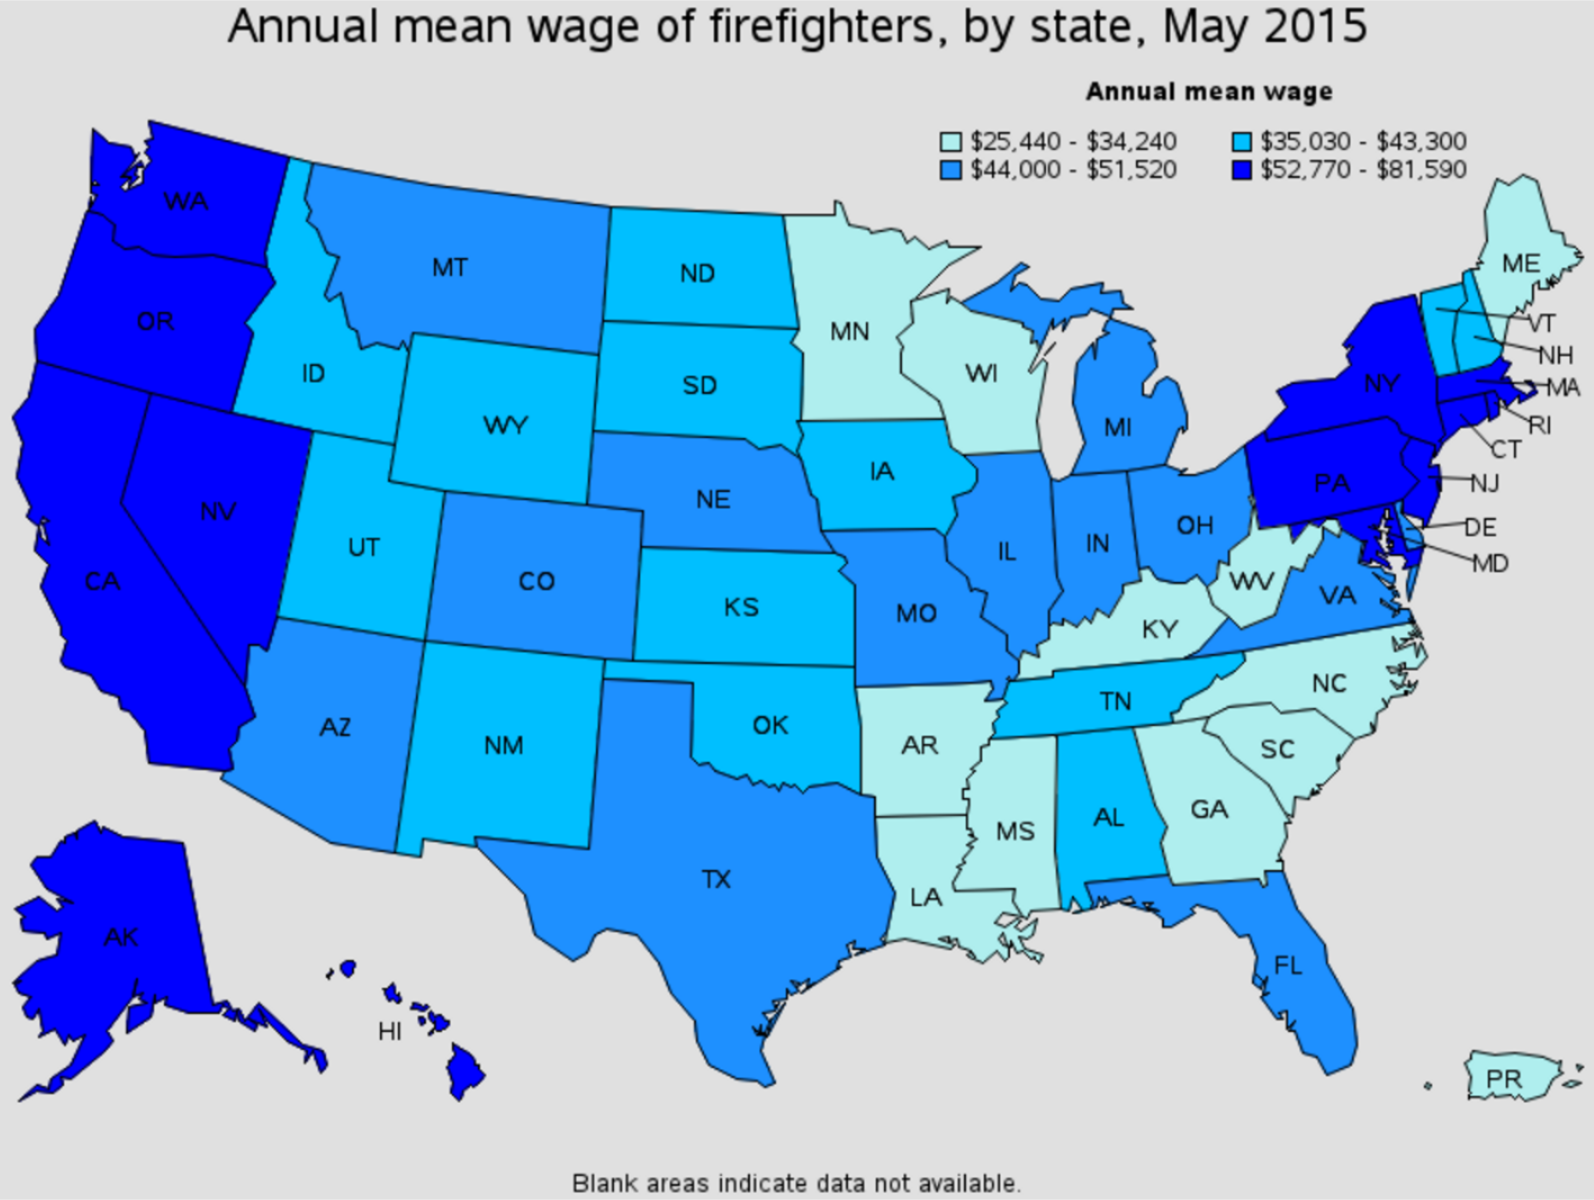 firefighter average salary by state Williamsport Maryland